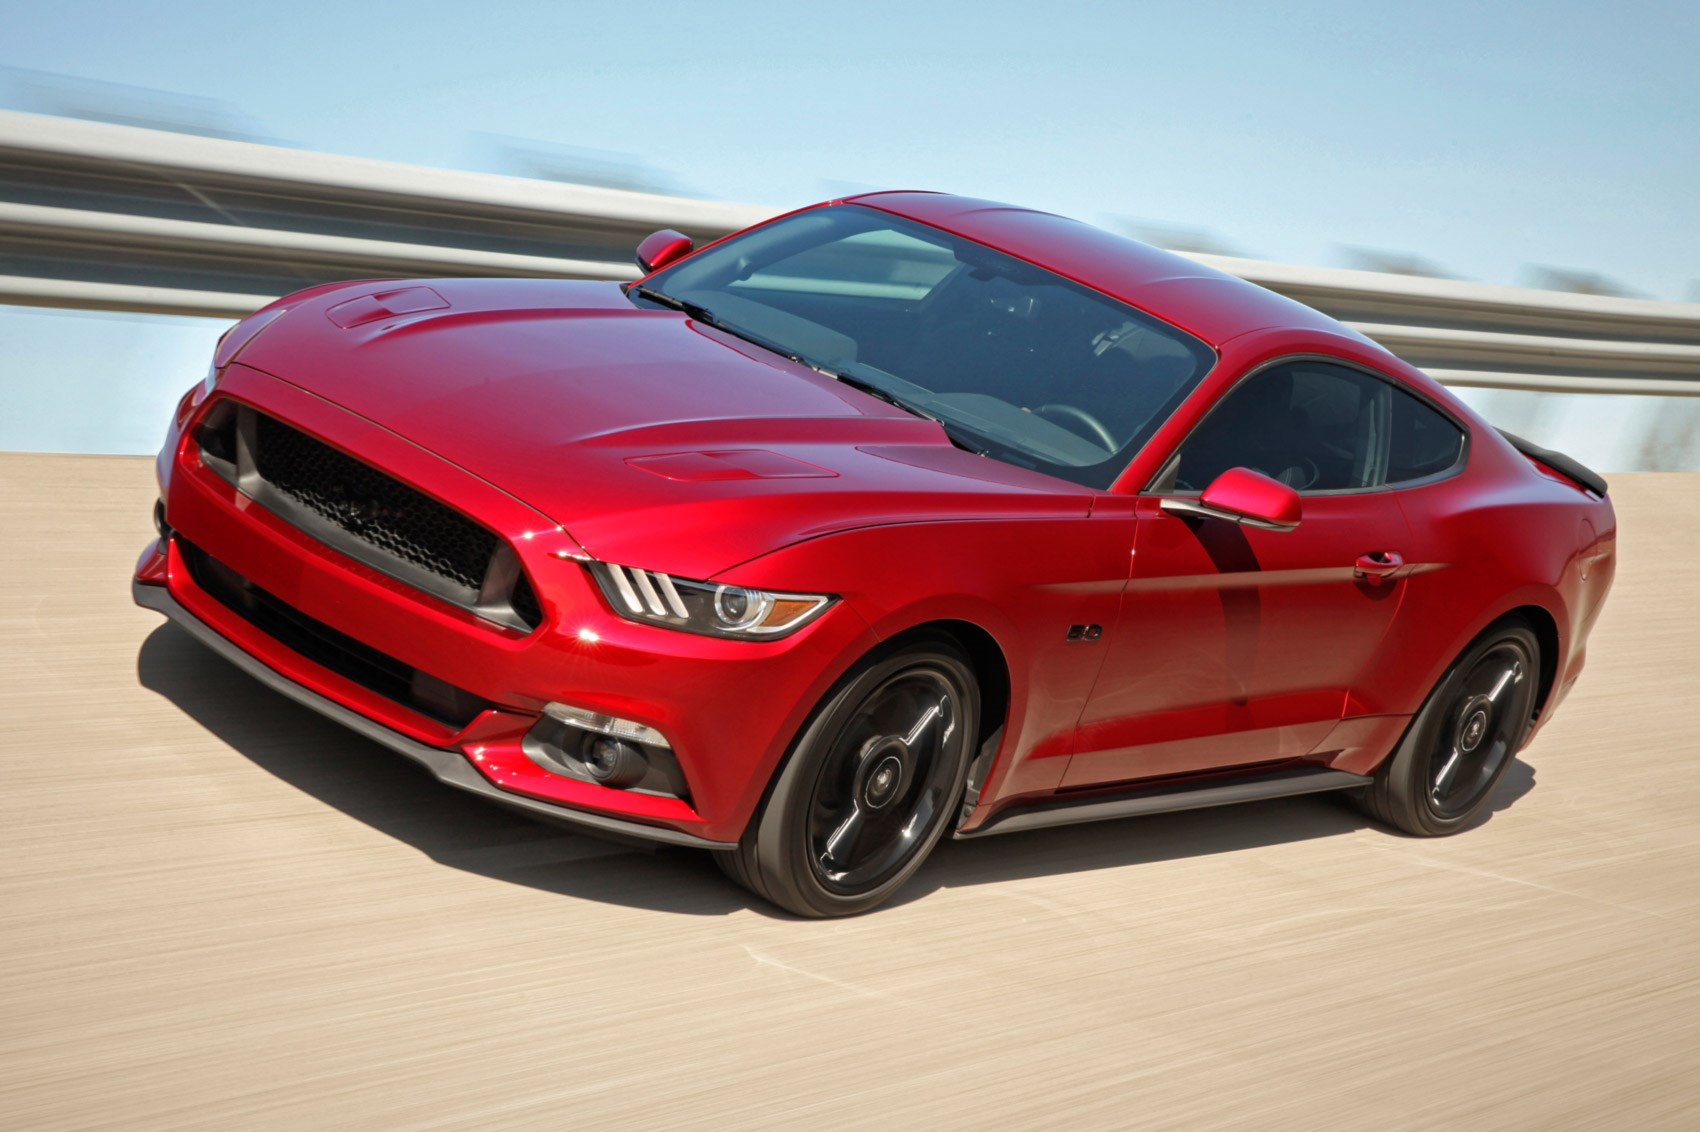 Ford Mustang 5 0 V8 Gt 2016 Review By Car Magazine